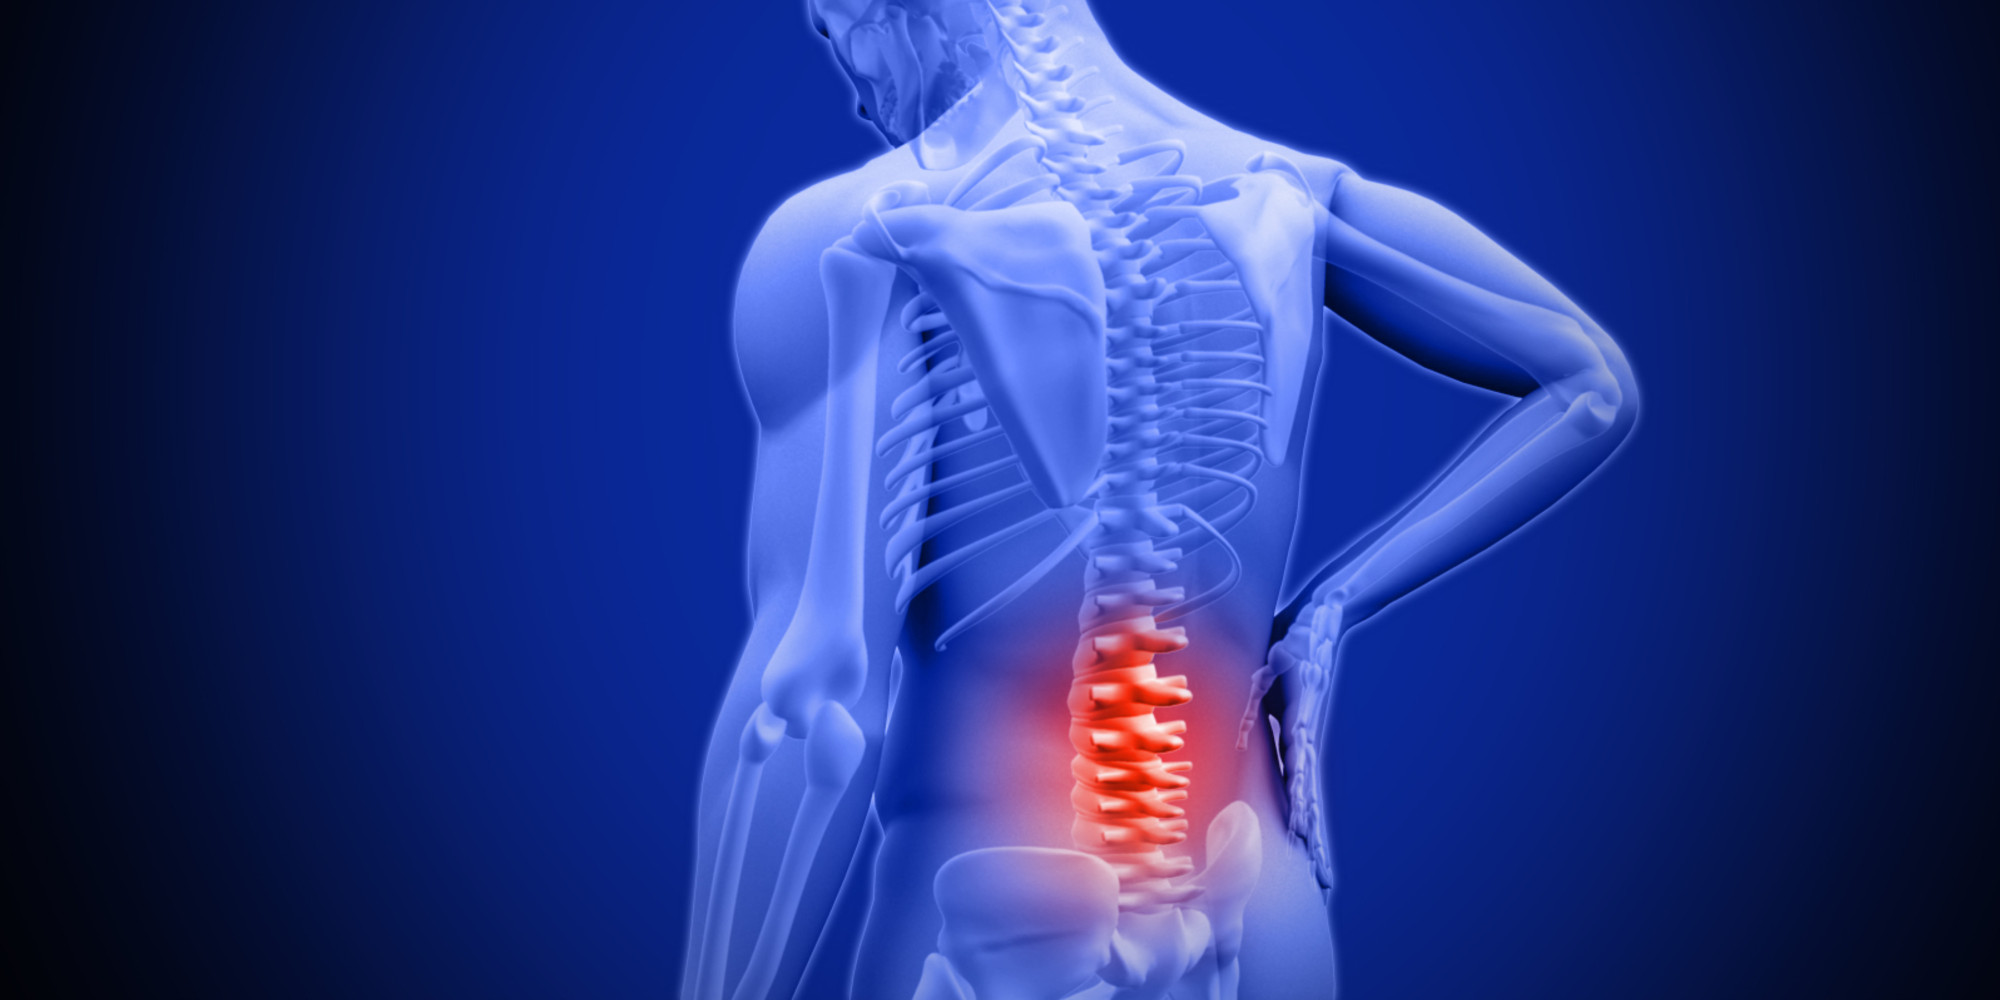 What to do When Suffering From a Stubborn Lower Back Pain?